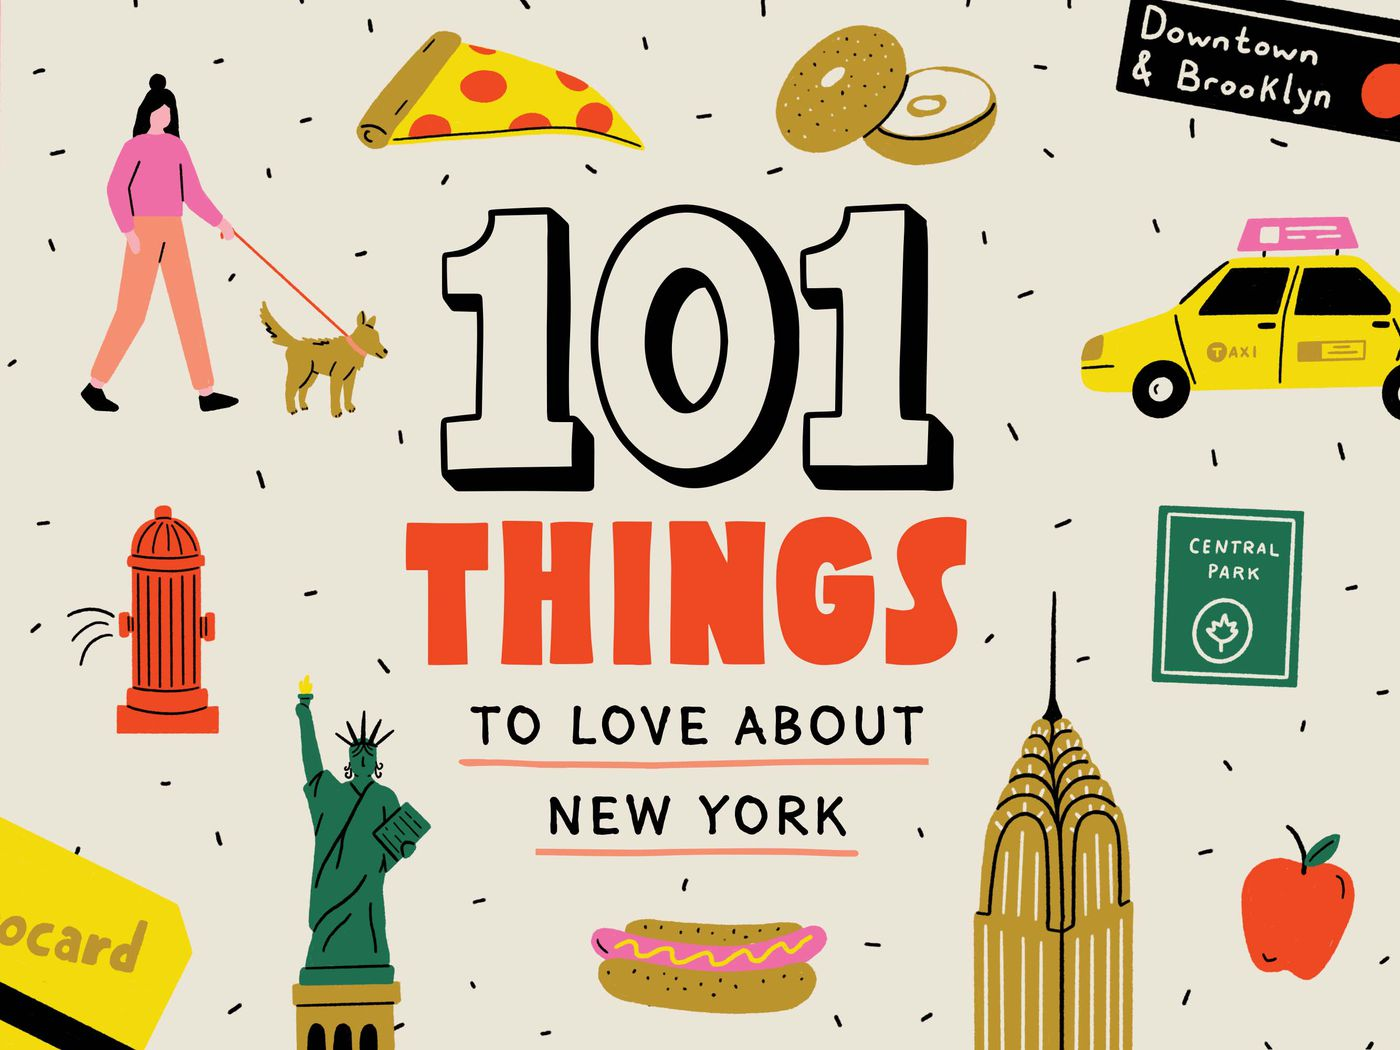 101 things to love about New York - Curbed NY